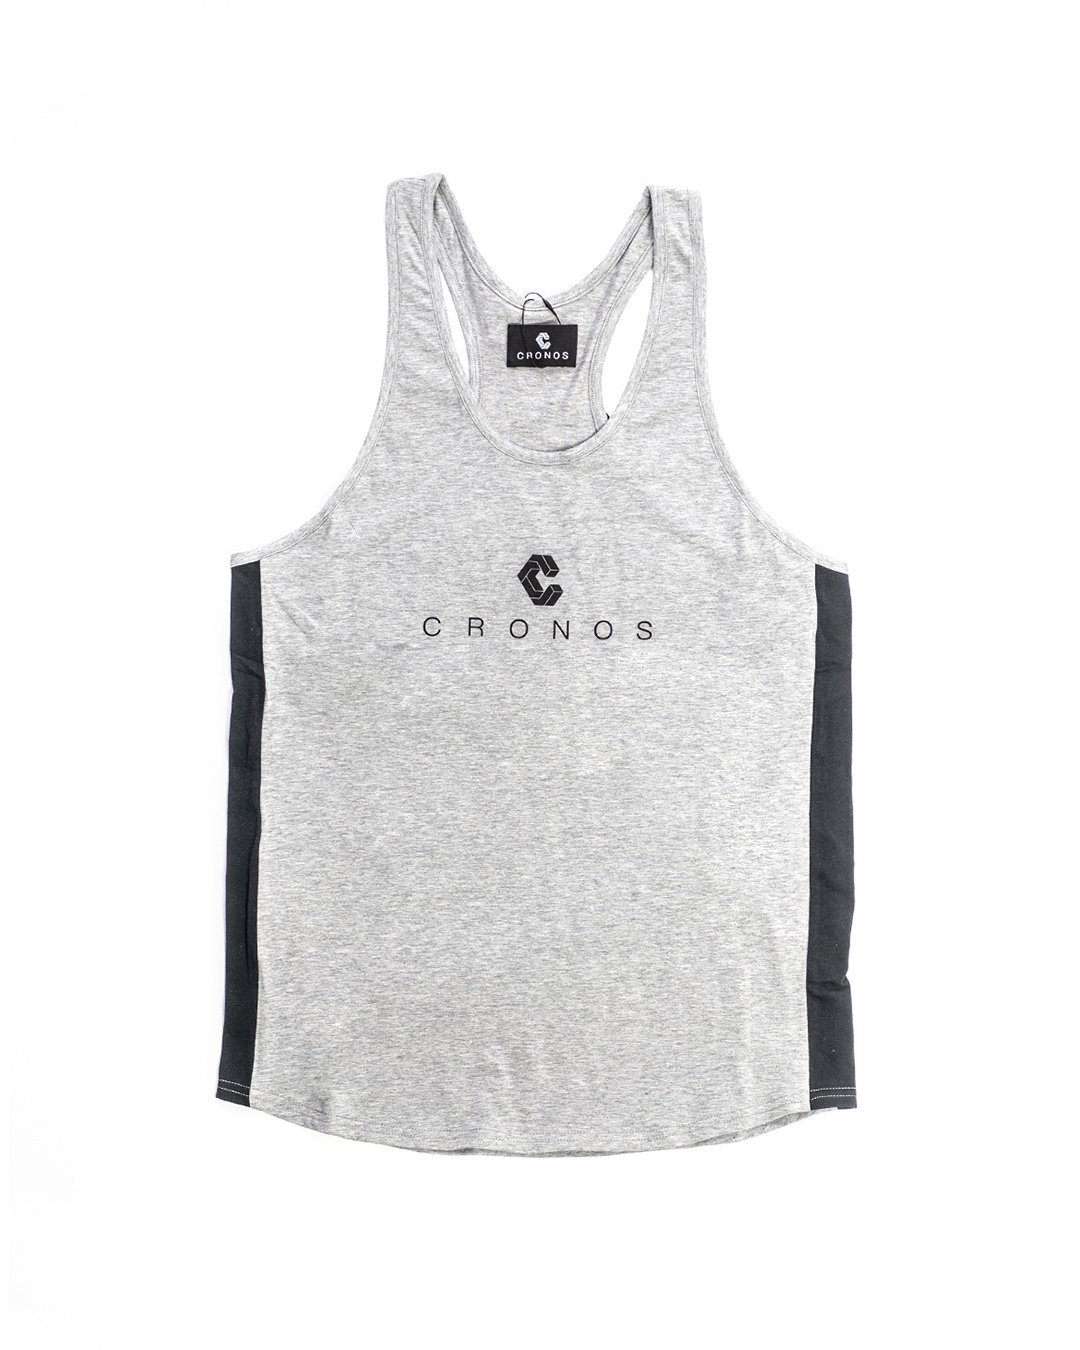 <img class='new_mark_img1' src='https://img.shop-pro.jp/img/new/icons1.gif' style='border:none;display:inline;margin:0px;padding:0px;width:auto;' />CRONOS SIDE COLOR   TANKTOP GRAY&BLACK